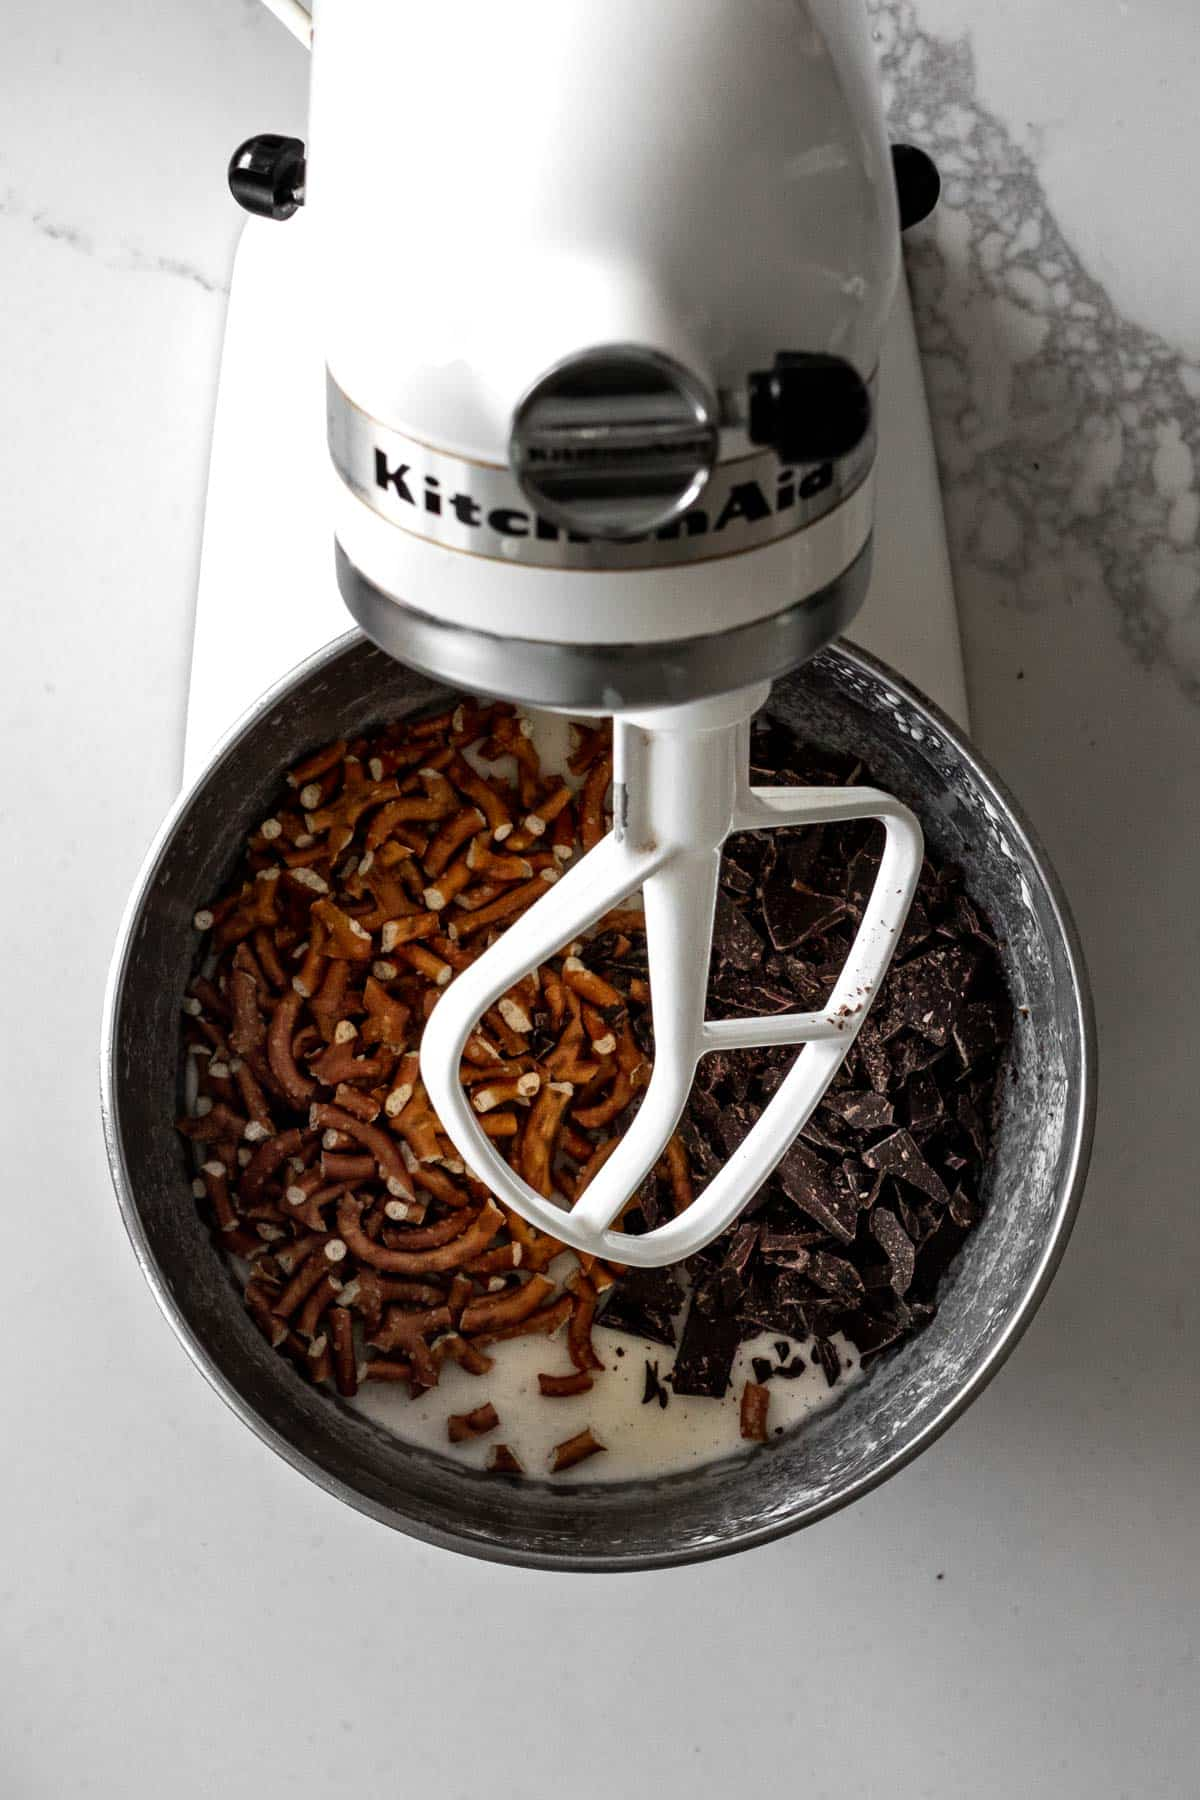 No churn ice cream in kitchen-aid mixer with pretzel and chocolate pieces